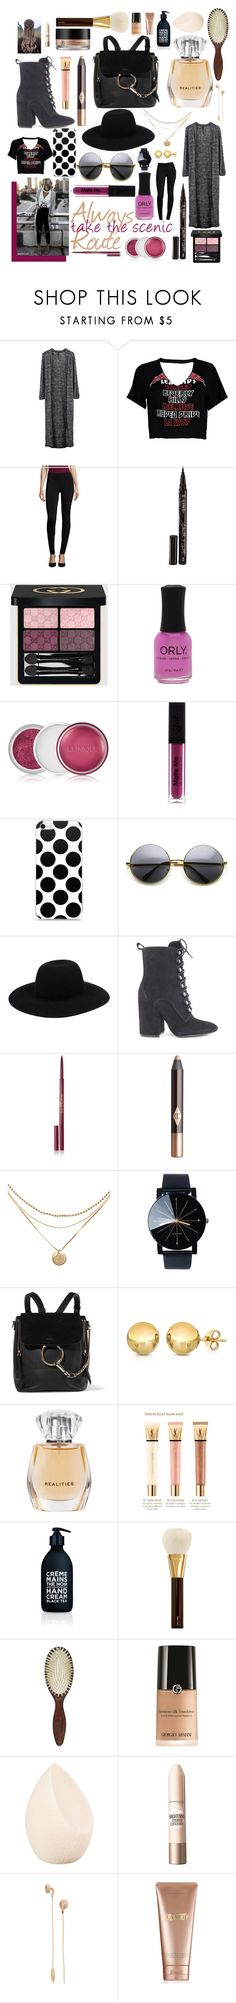 """Summer Outfit #9"" by rightpinkgirl on Polyvore featuring Taylor, Boohoo, i Jeans by Buffalo, Smith & Cult, Gucci, Clinique, Forever 21, Off-White, Kendall + Kylie and Wander Beauty"